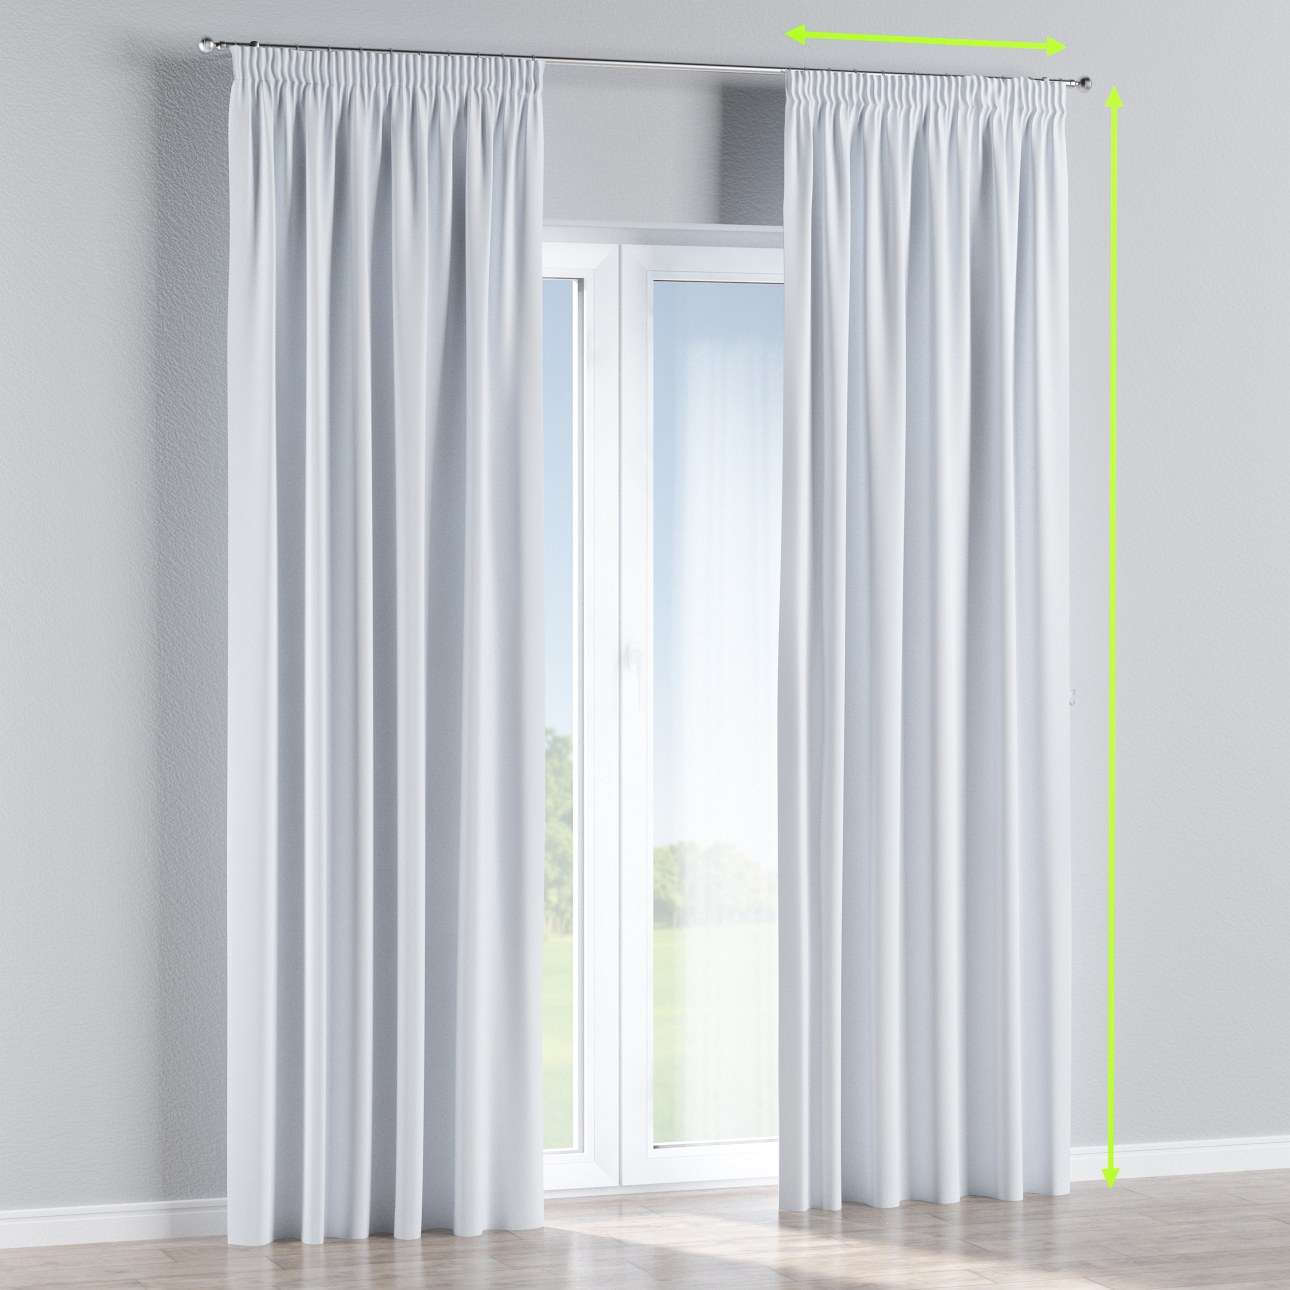 Pencil pleat curtains in collection Blackout, fabric: 269-01